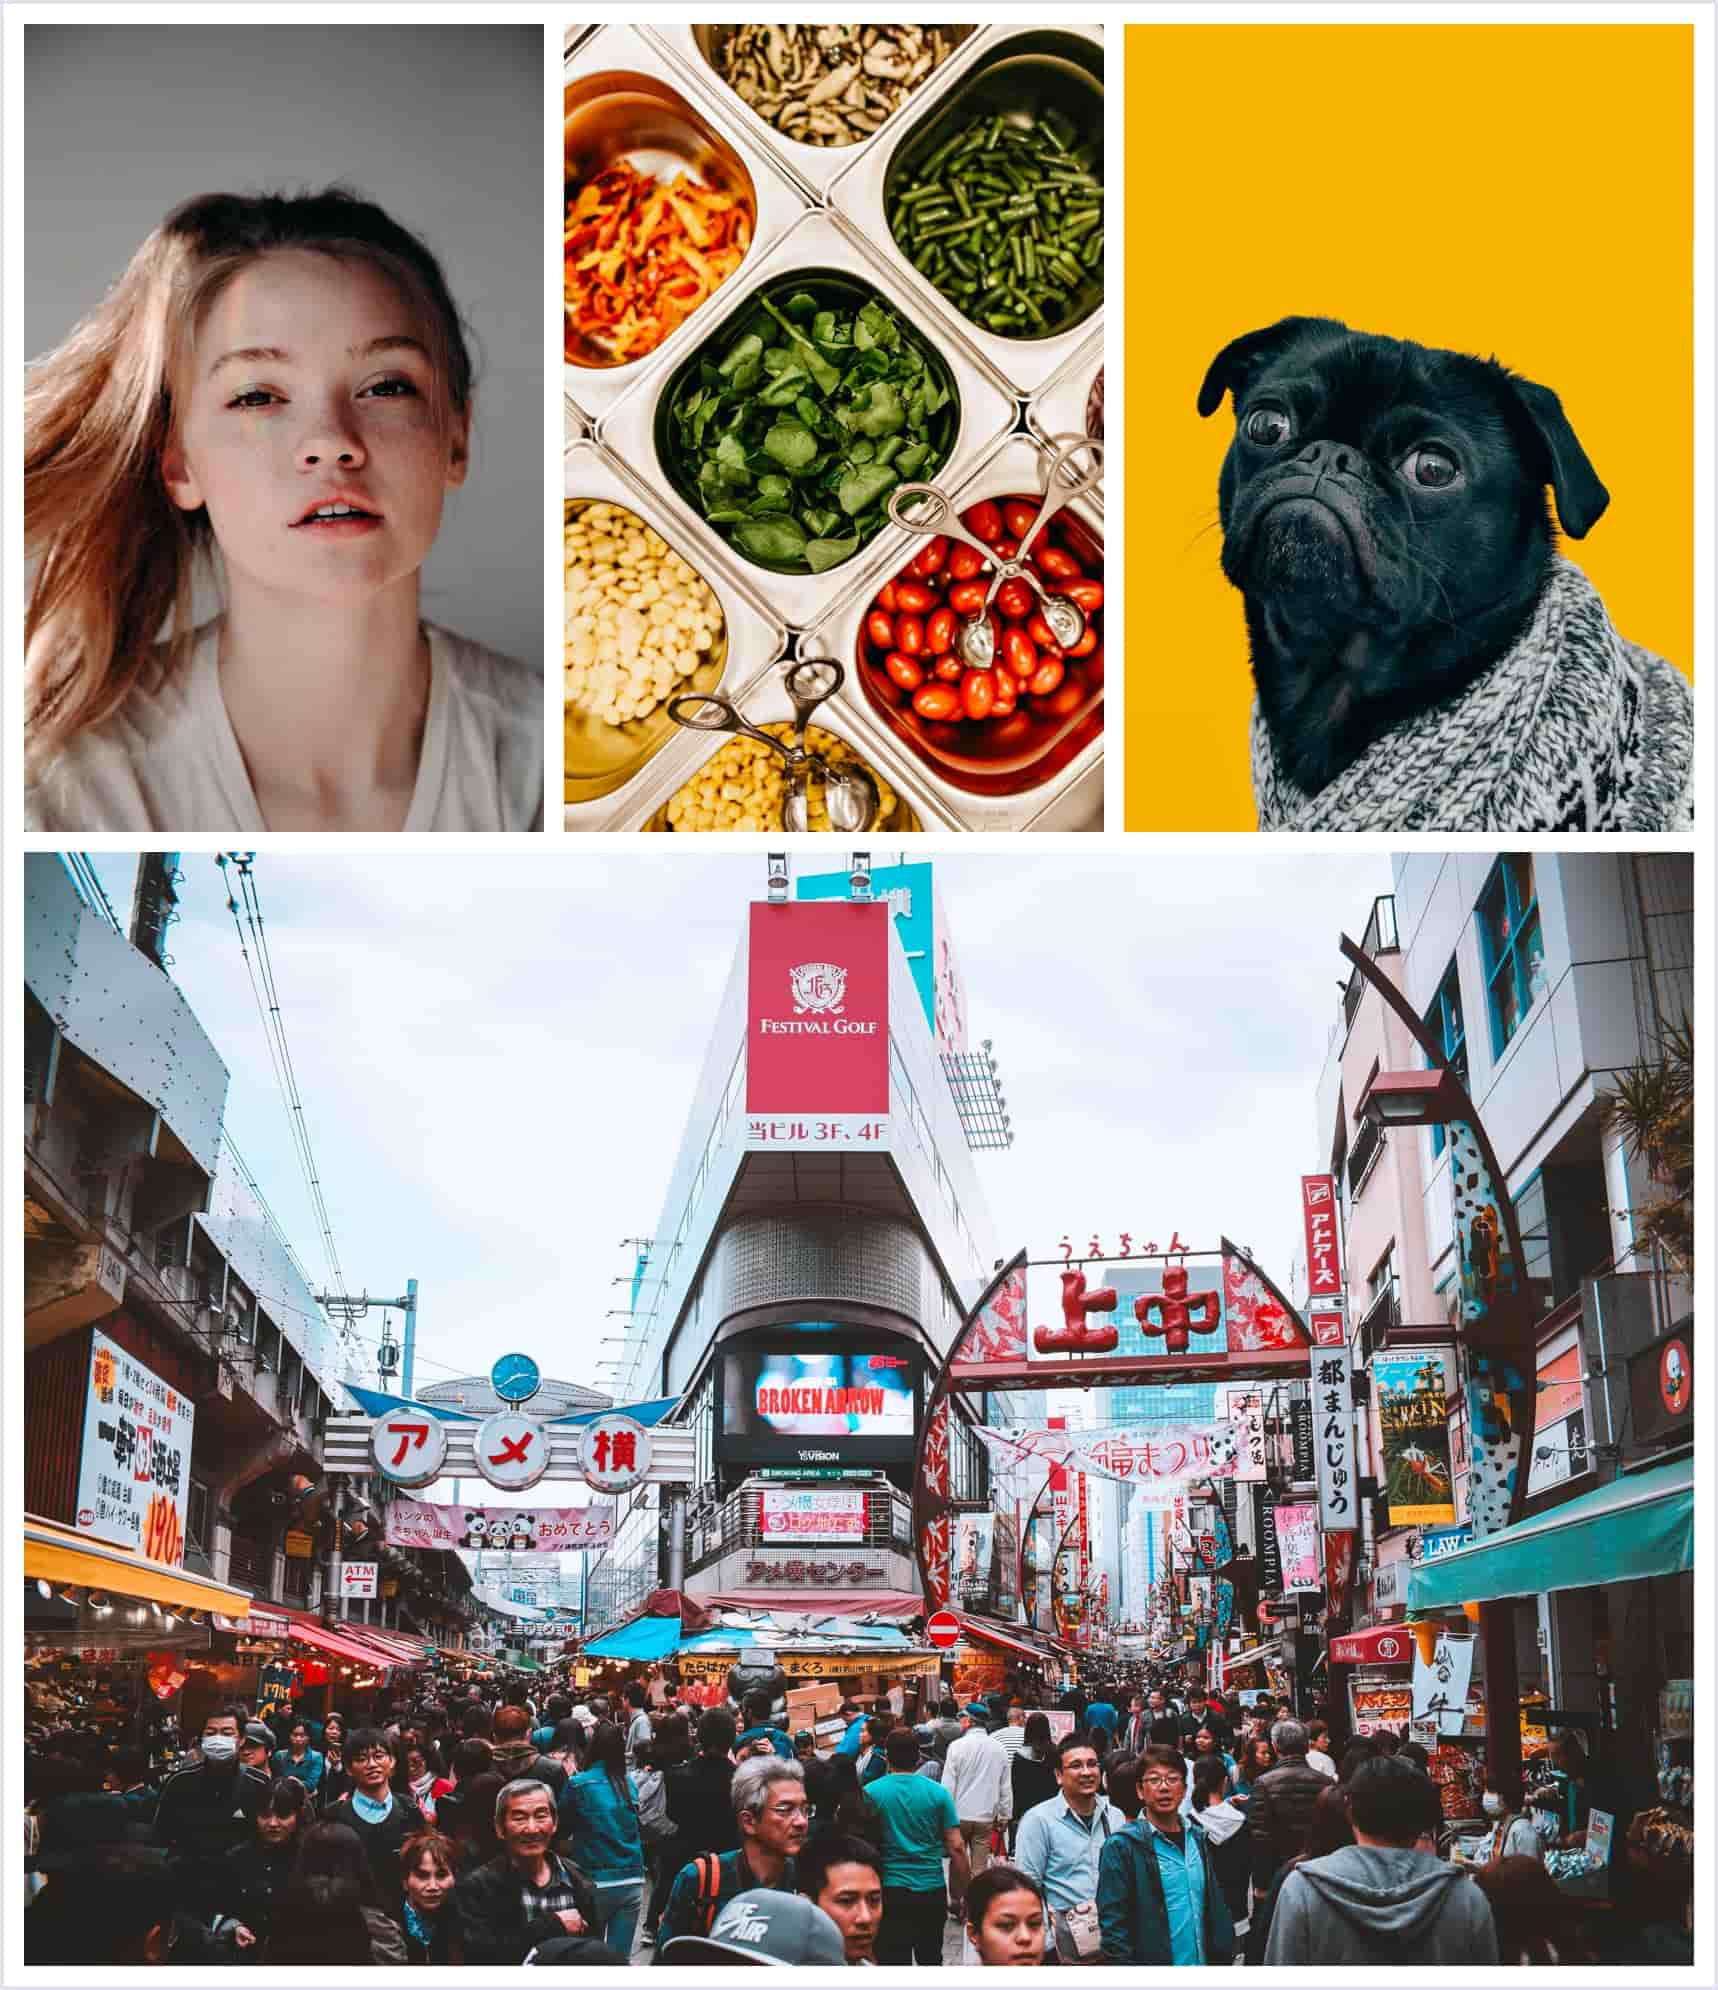 Hot web design trends: Natural and authentic photos | Codica